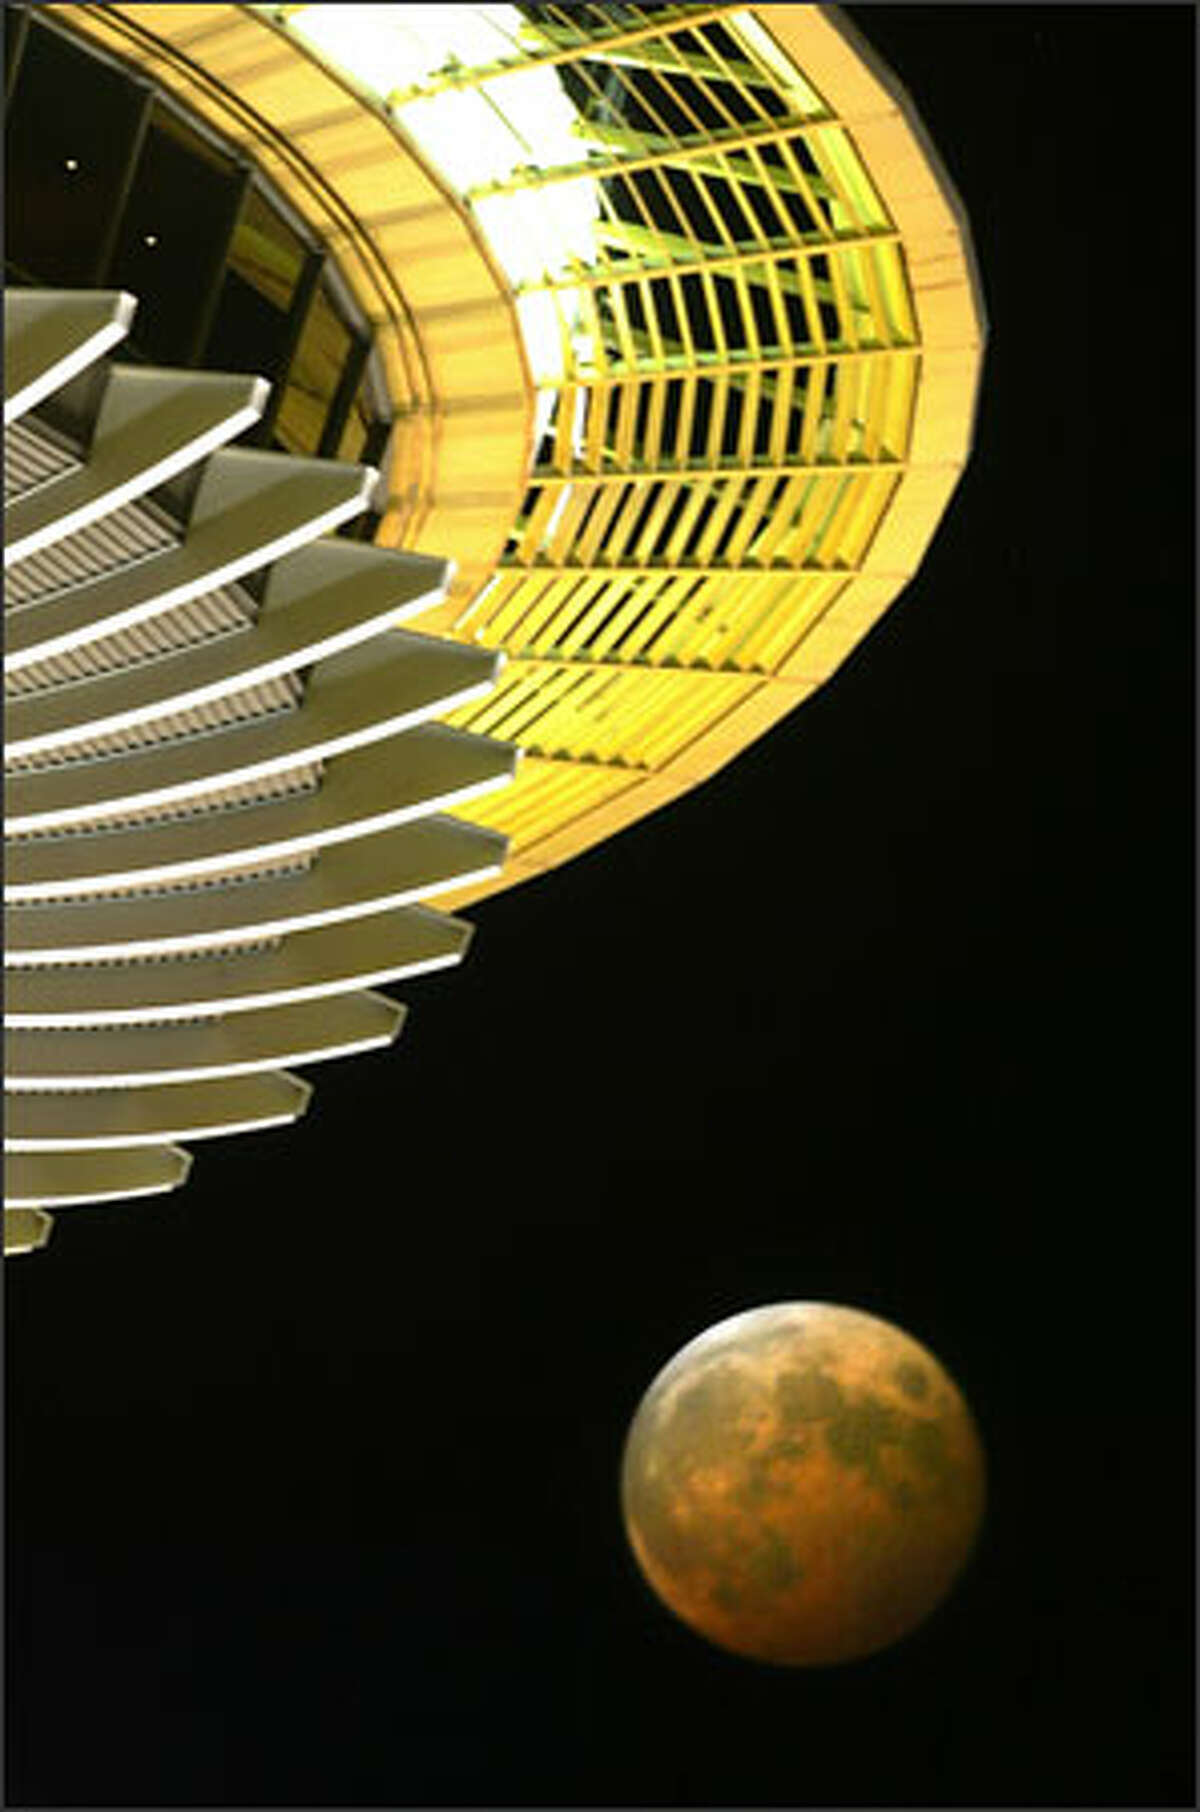 A total lunar eclipse is viewed from beneath the Space Needle. The celestial phenomenon, which occurs when the moon passes through the Earth's shadow and appears to turn dark orange, won't happen again until 2007. NASA says a total lunar eclipse gives scientists an opportunity to assess the quality of Earth's atmosphere. The more dust there is, the darker the moon.